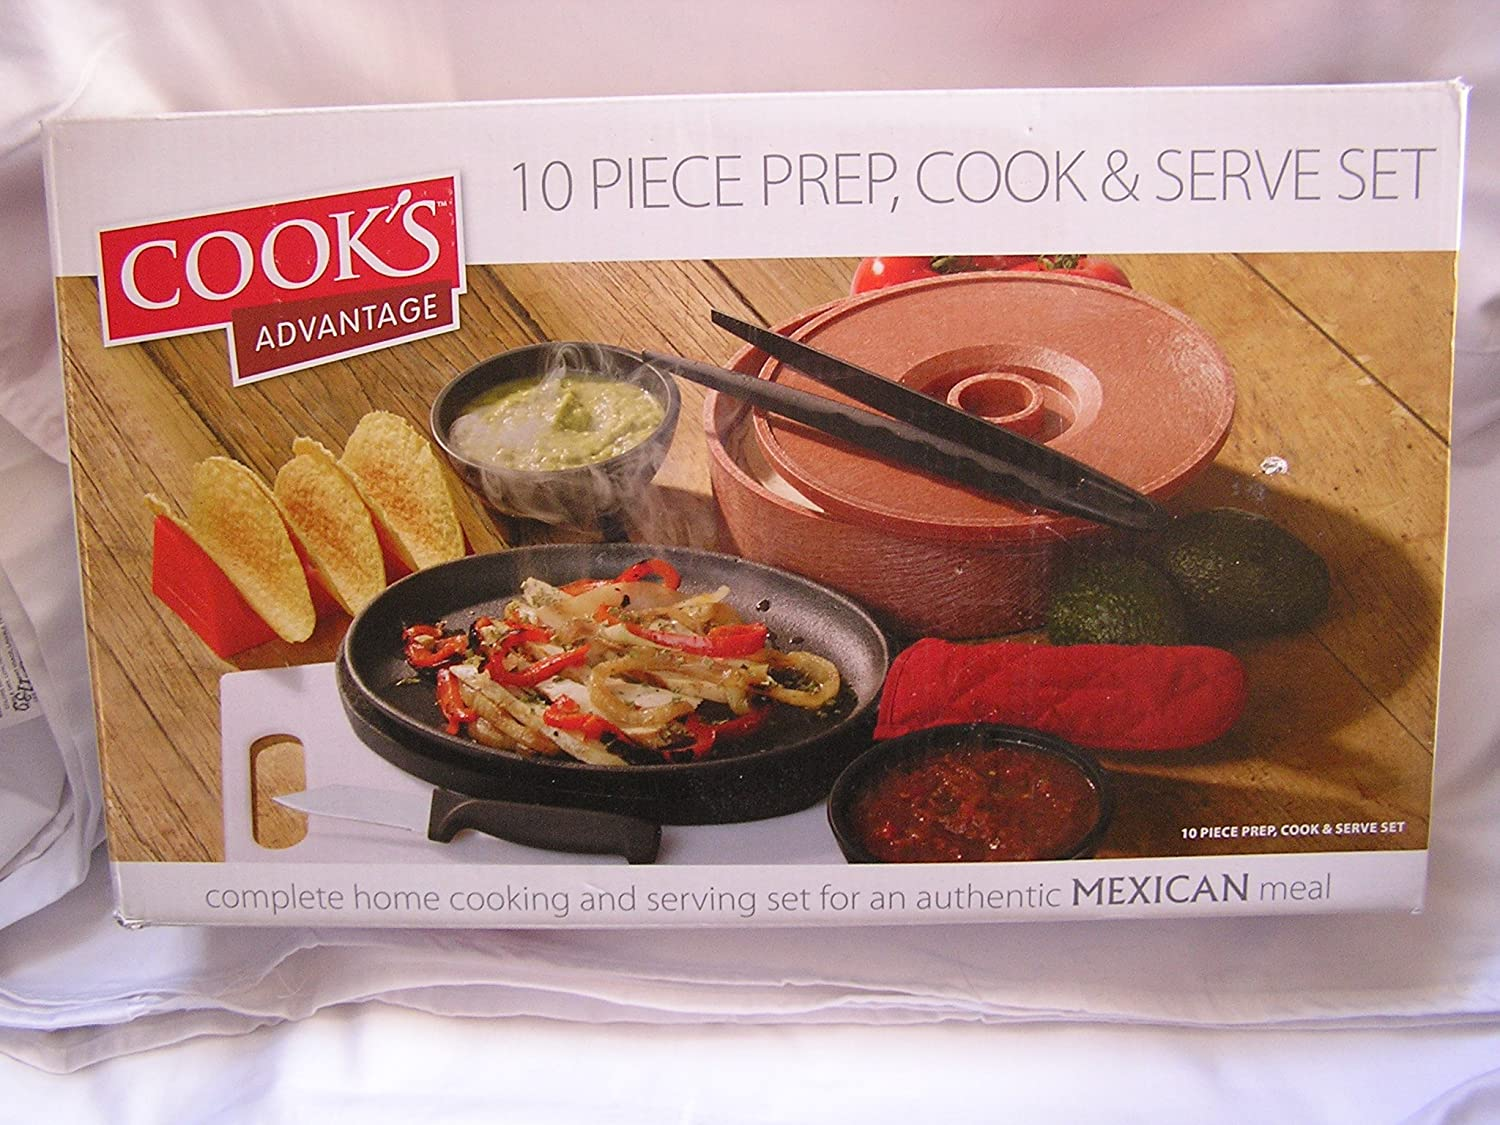 com cook s advantage pc prep cook serve set for com cook s advantage 10 pc prep cook serve set for mexican food meal kitchen dining